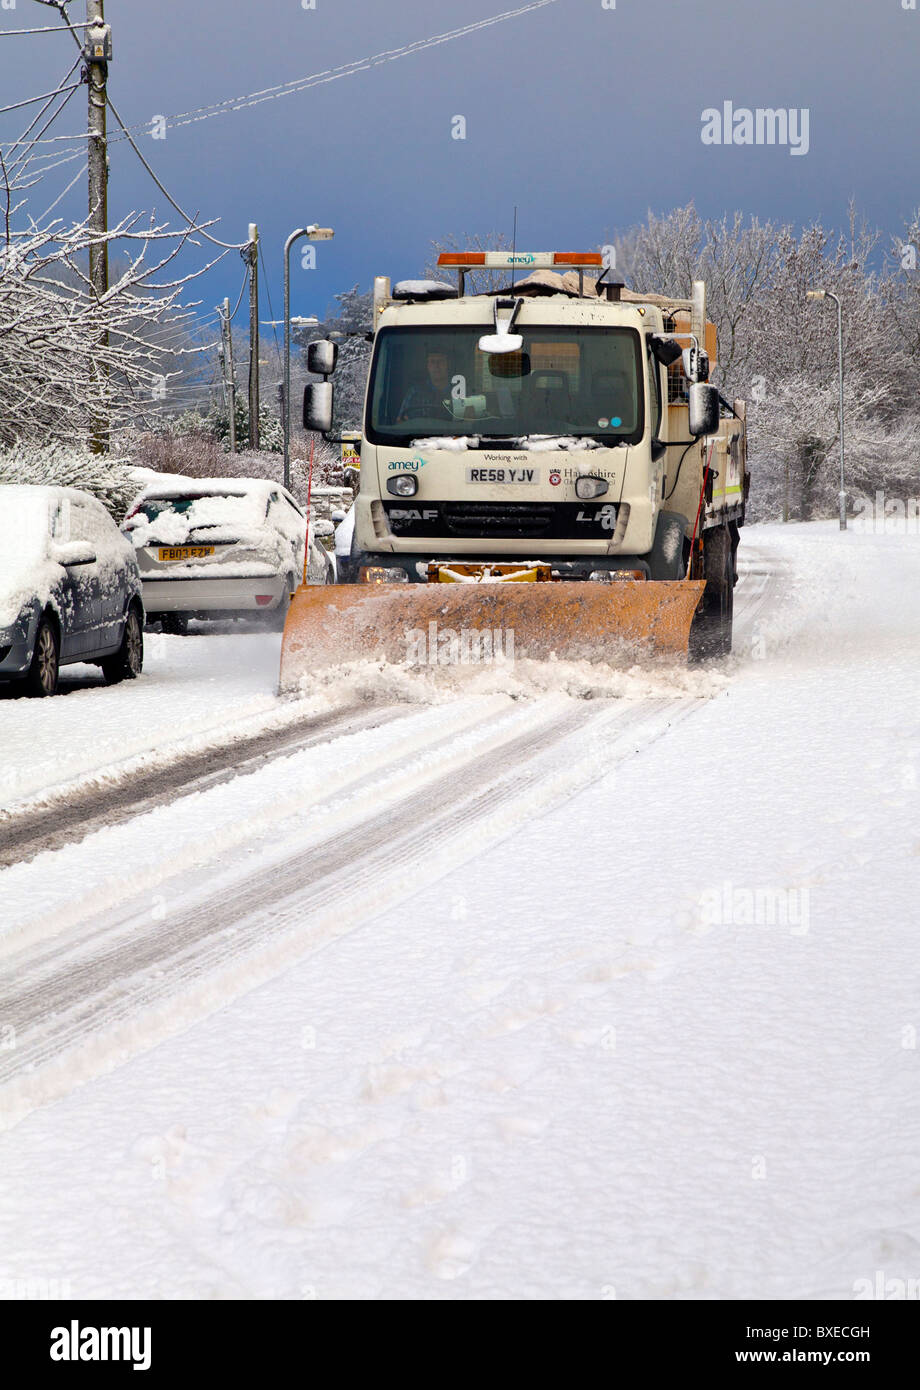 UK County Council snow plough lorry clearing snow on minor road - Stock Image